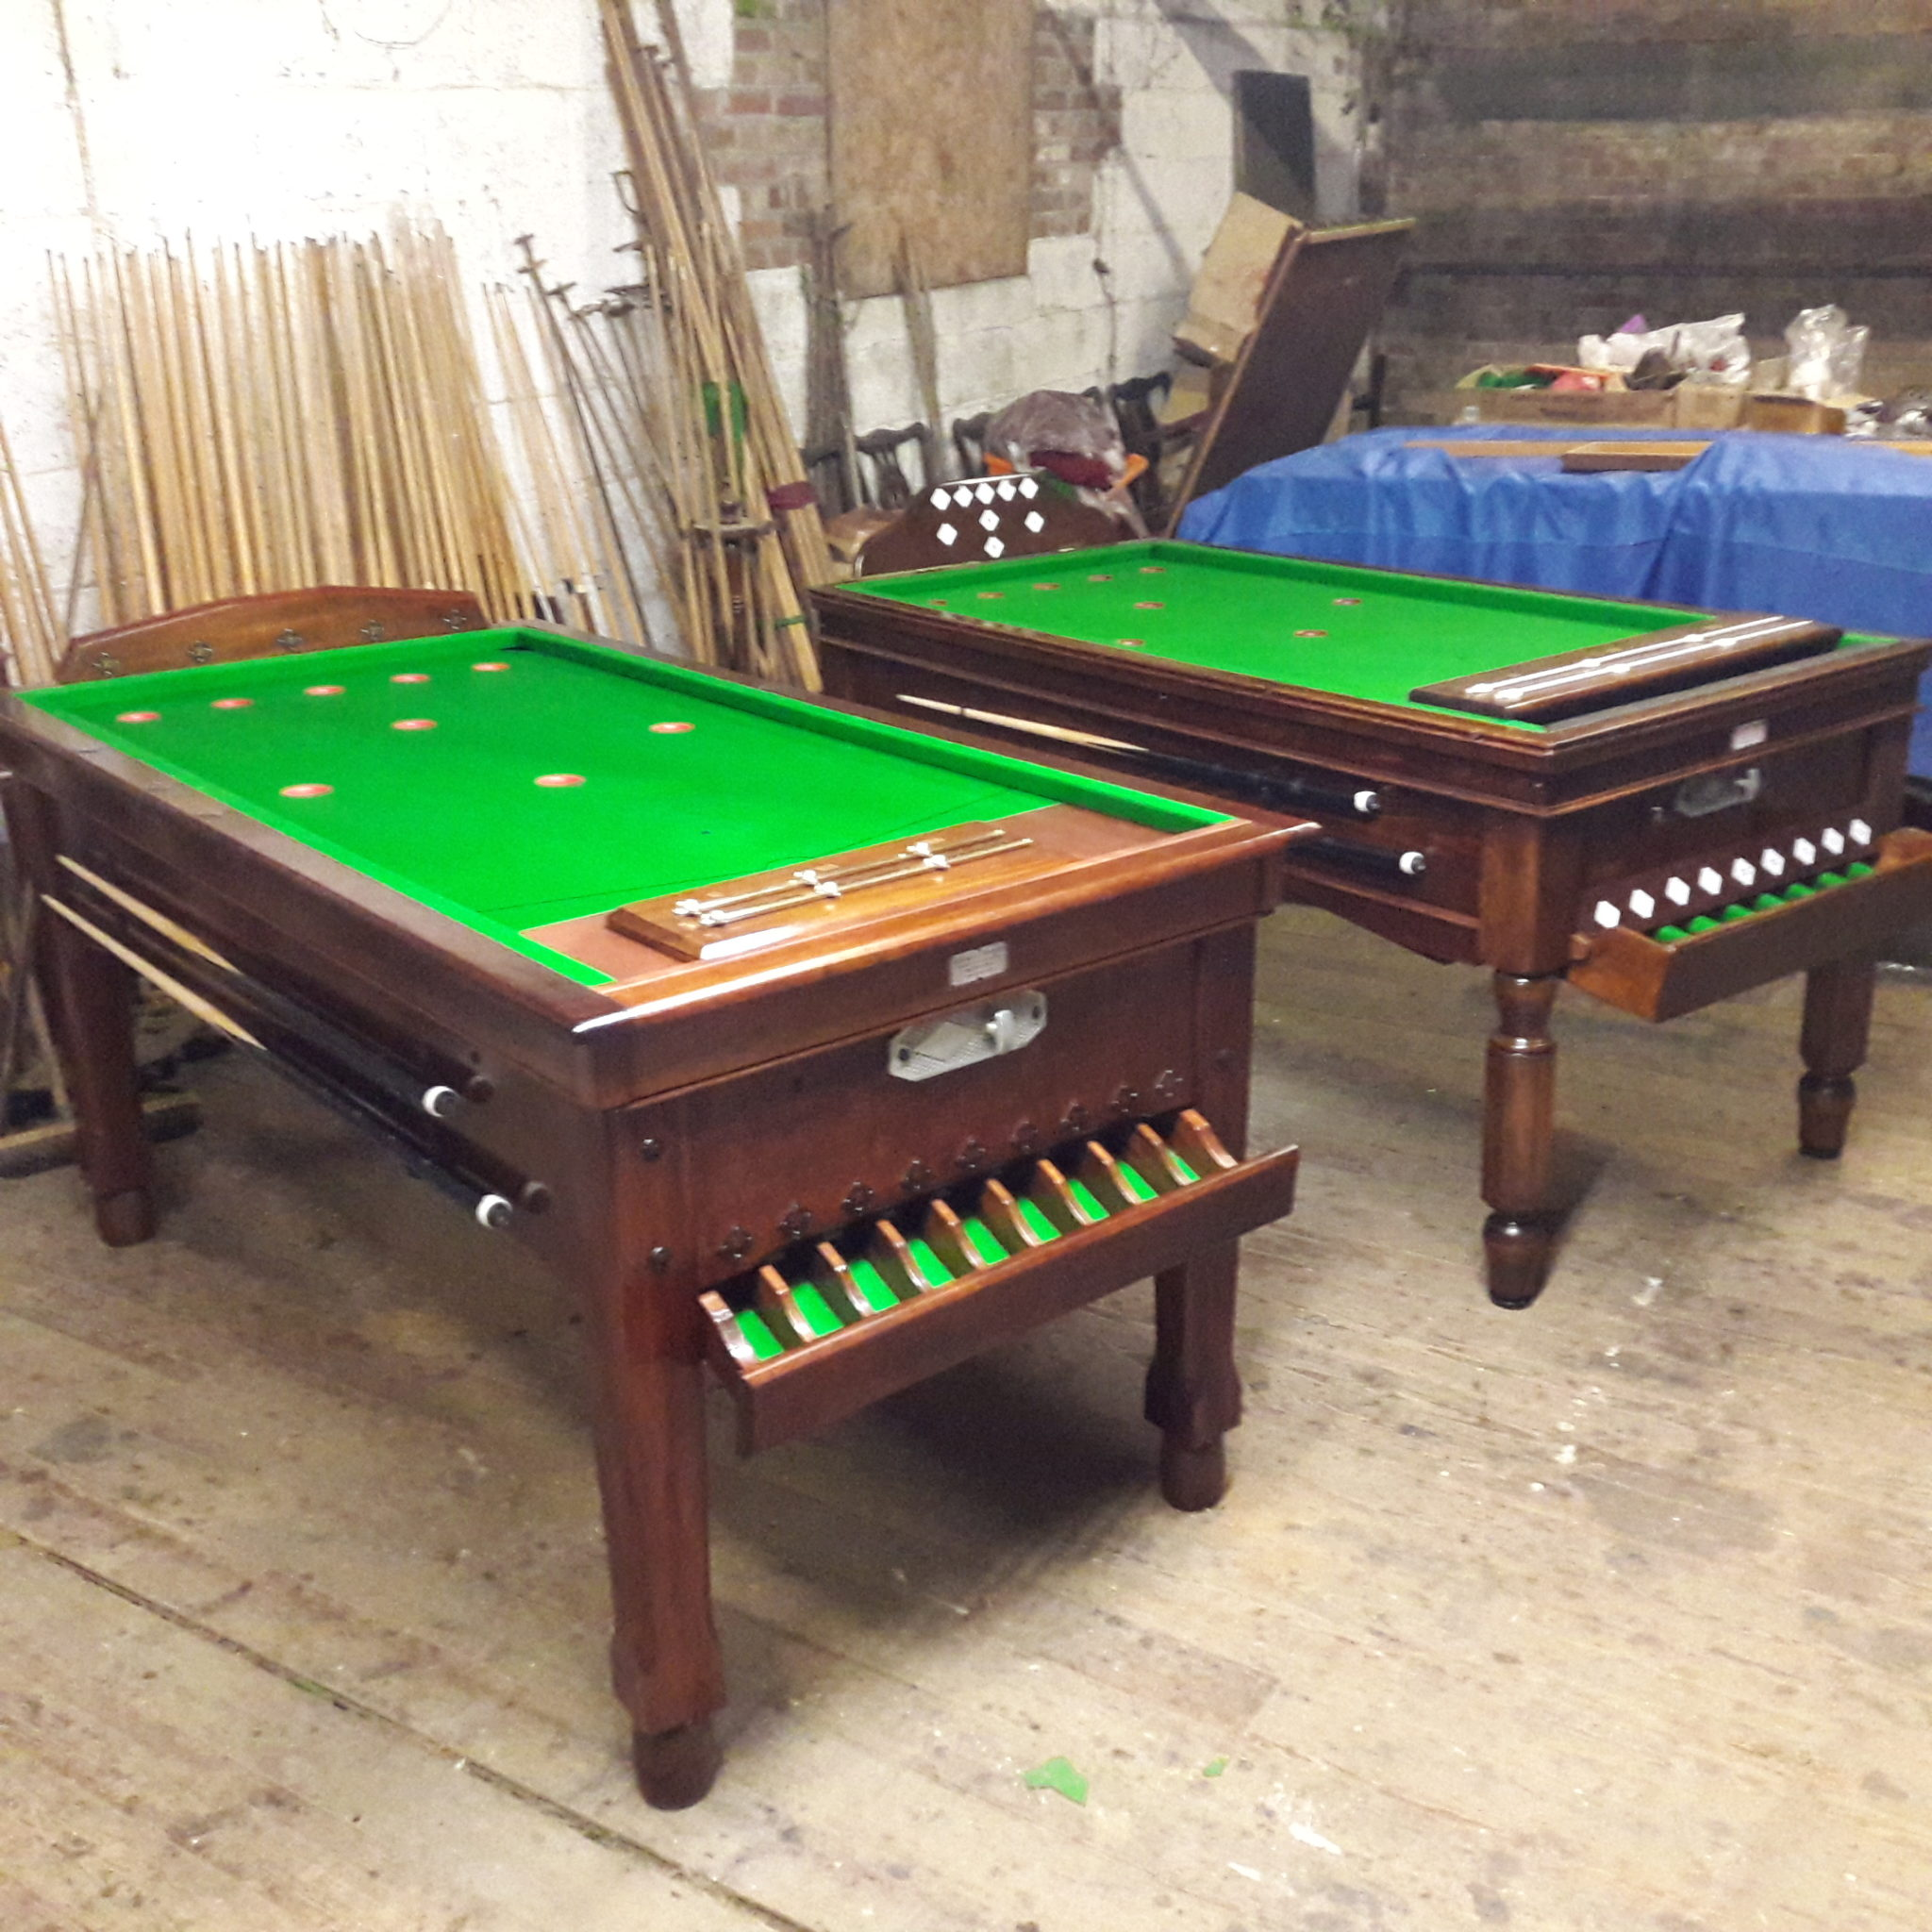 springdale md wayfair reviews tables furniture sports barrington table pool cheap pdx